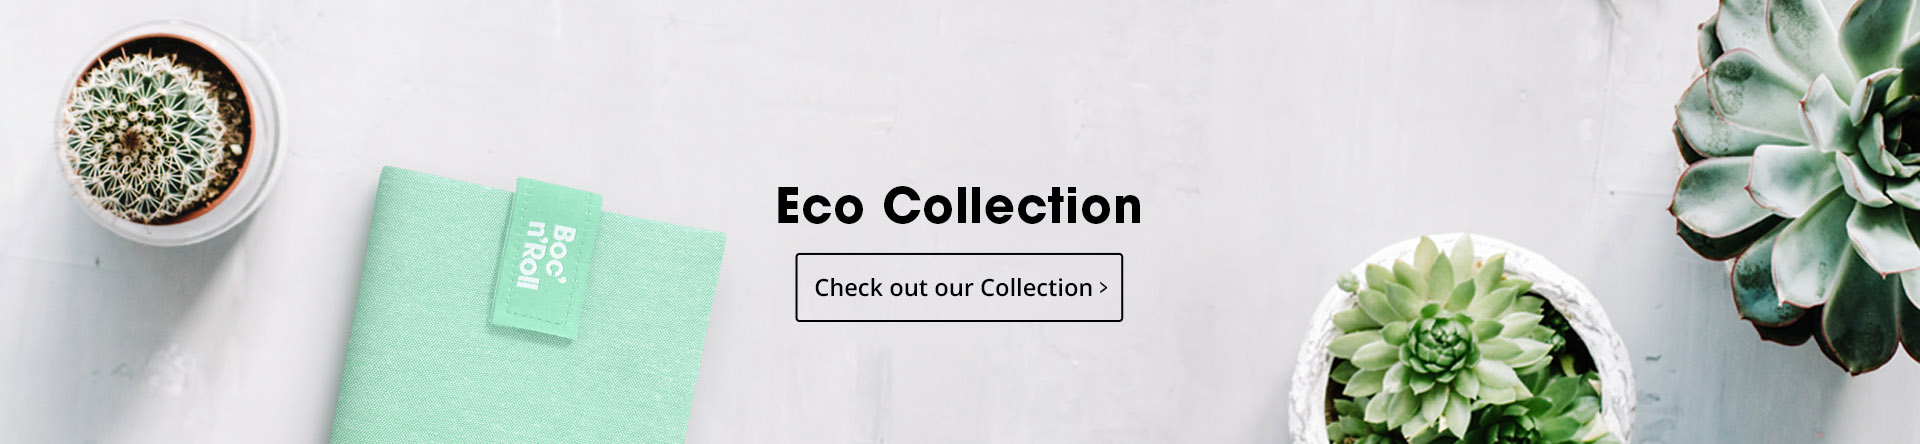 Collection Eco